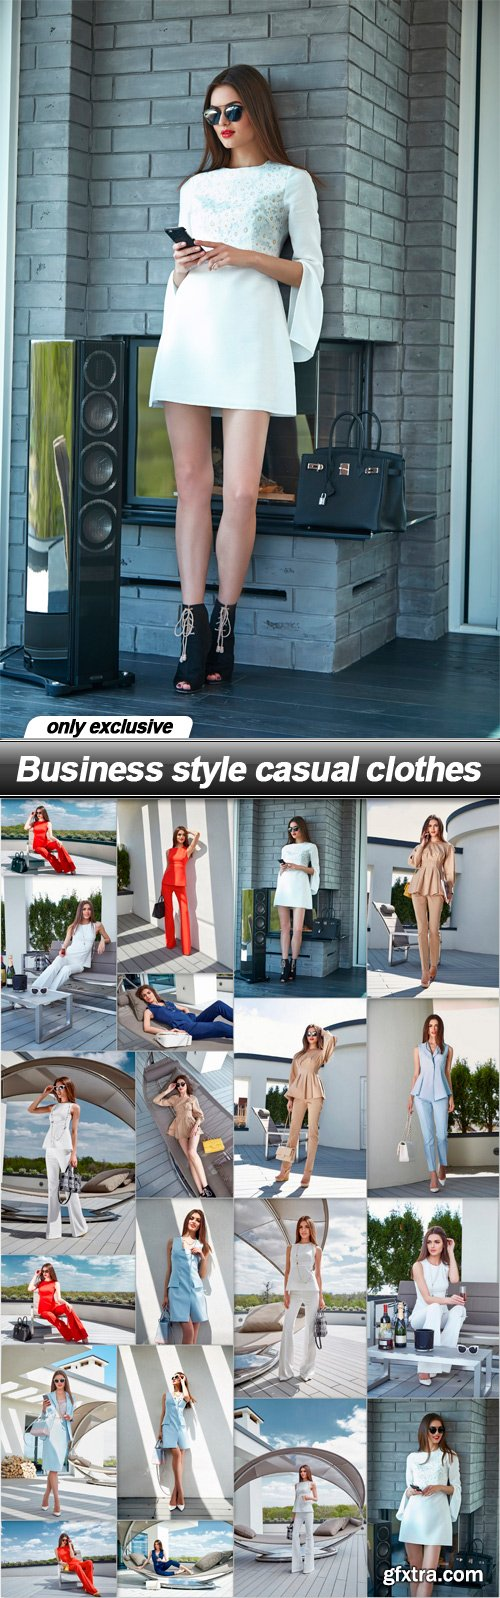 Business style casual clothes - 20 UHQ JPEG